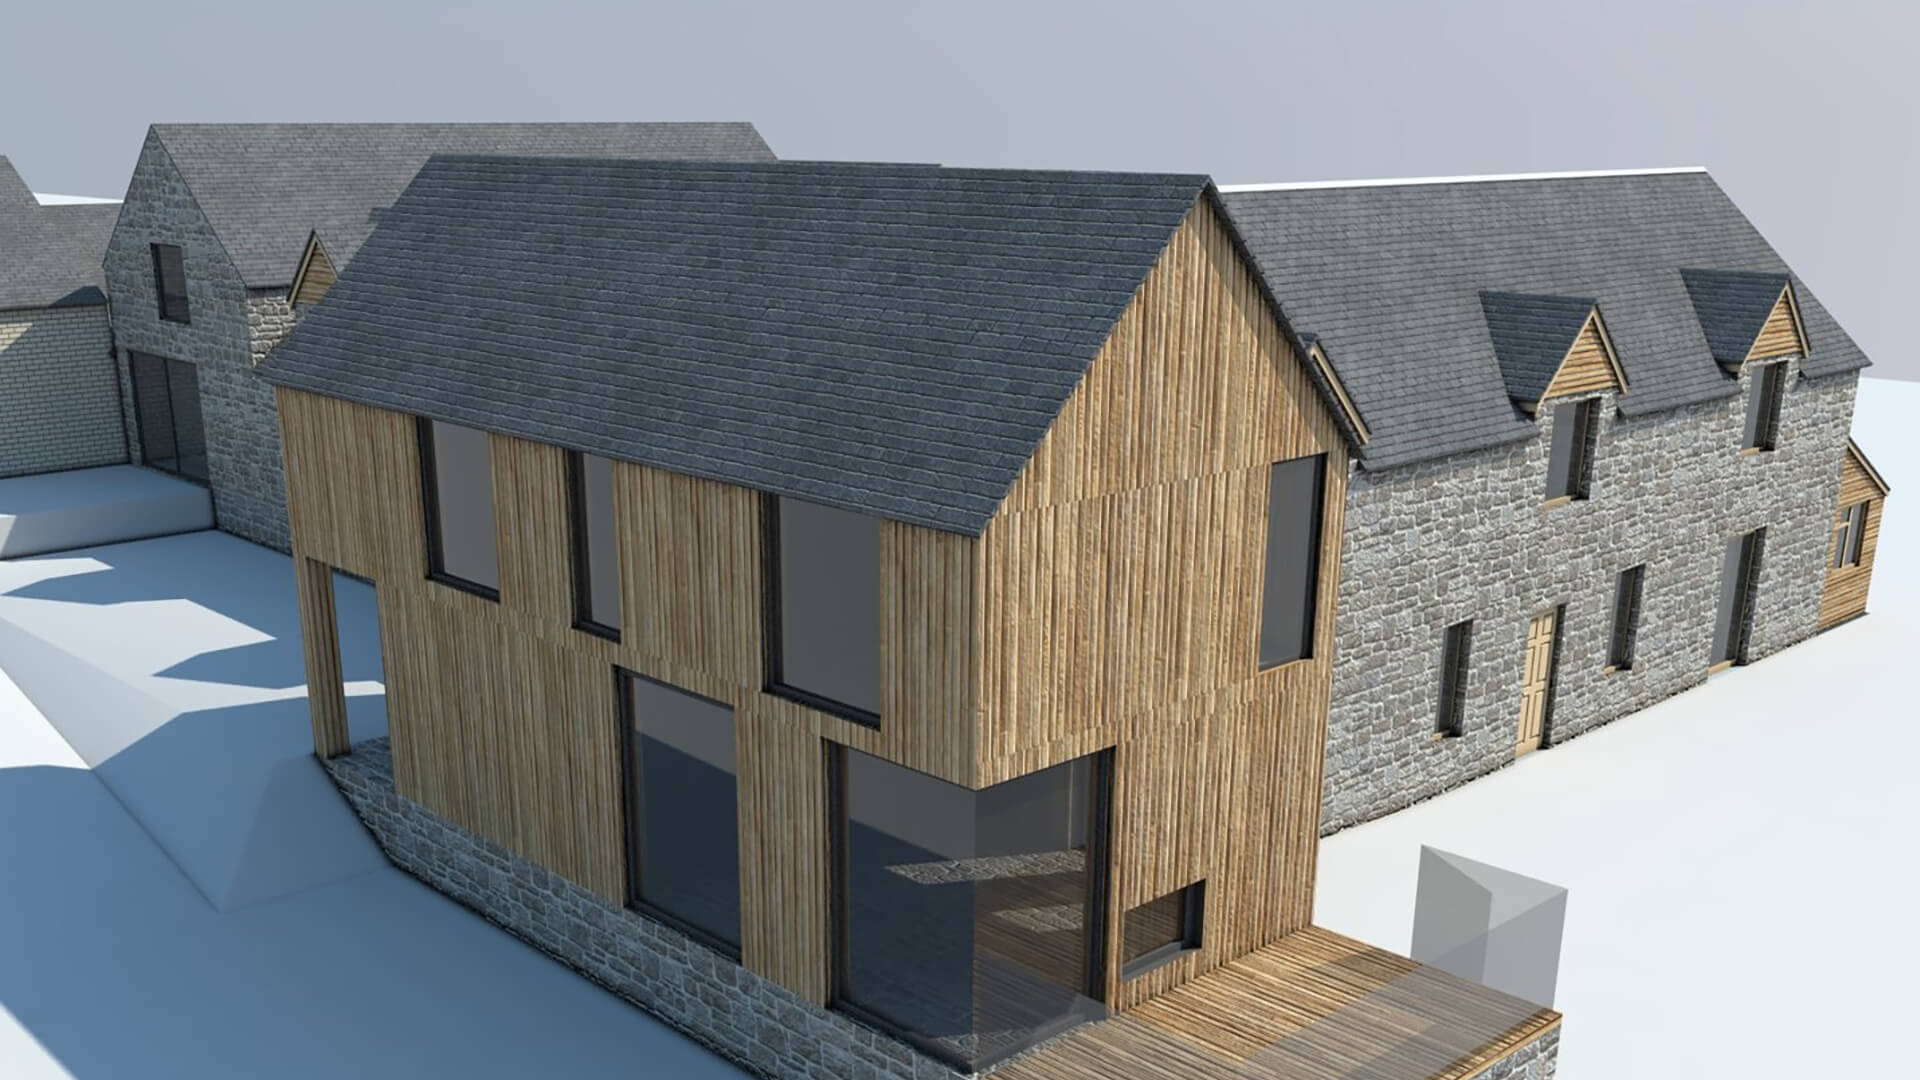 3D cad design for timber building